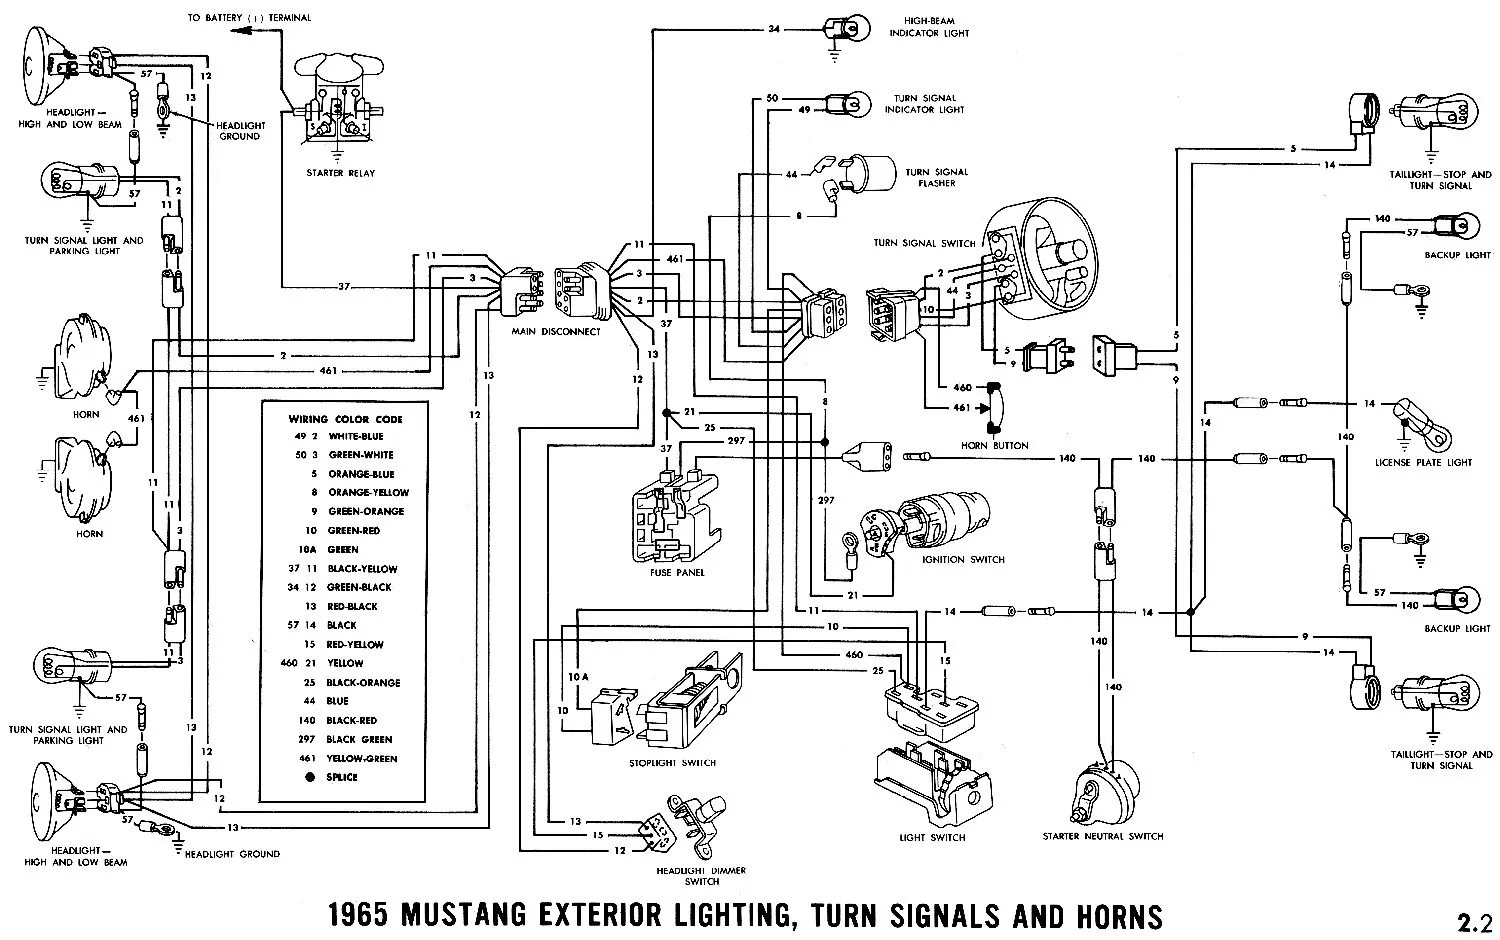 hight resolution of 1969 ford mustang engine wiring diagram wiring diagrams 66 mustang wiring diagram 1970 mustang engine diagram